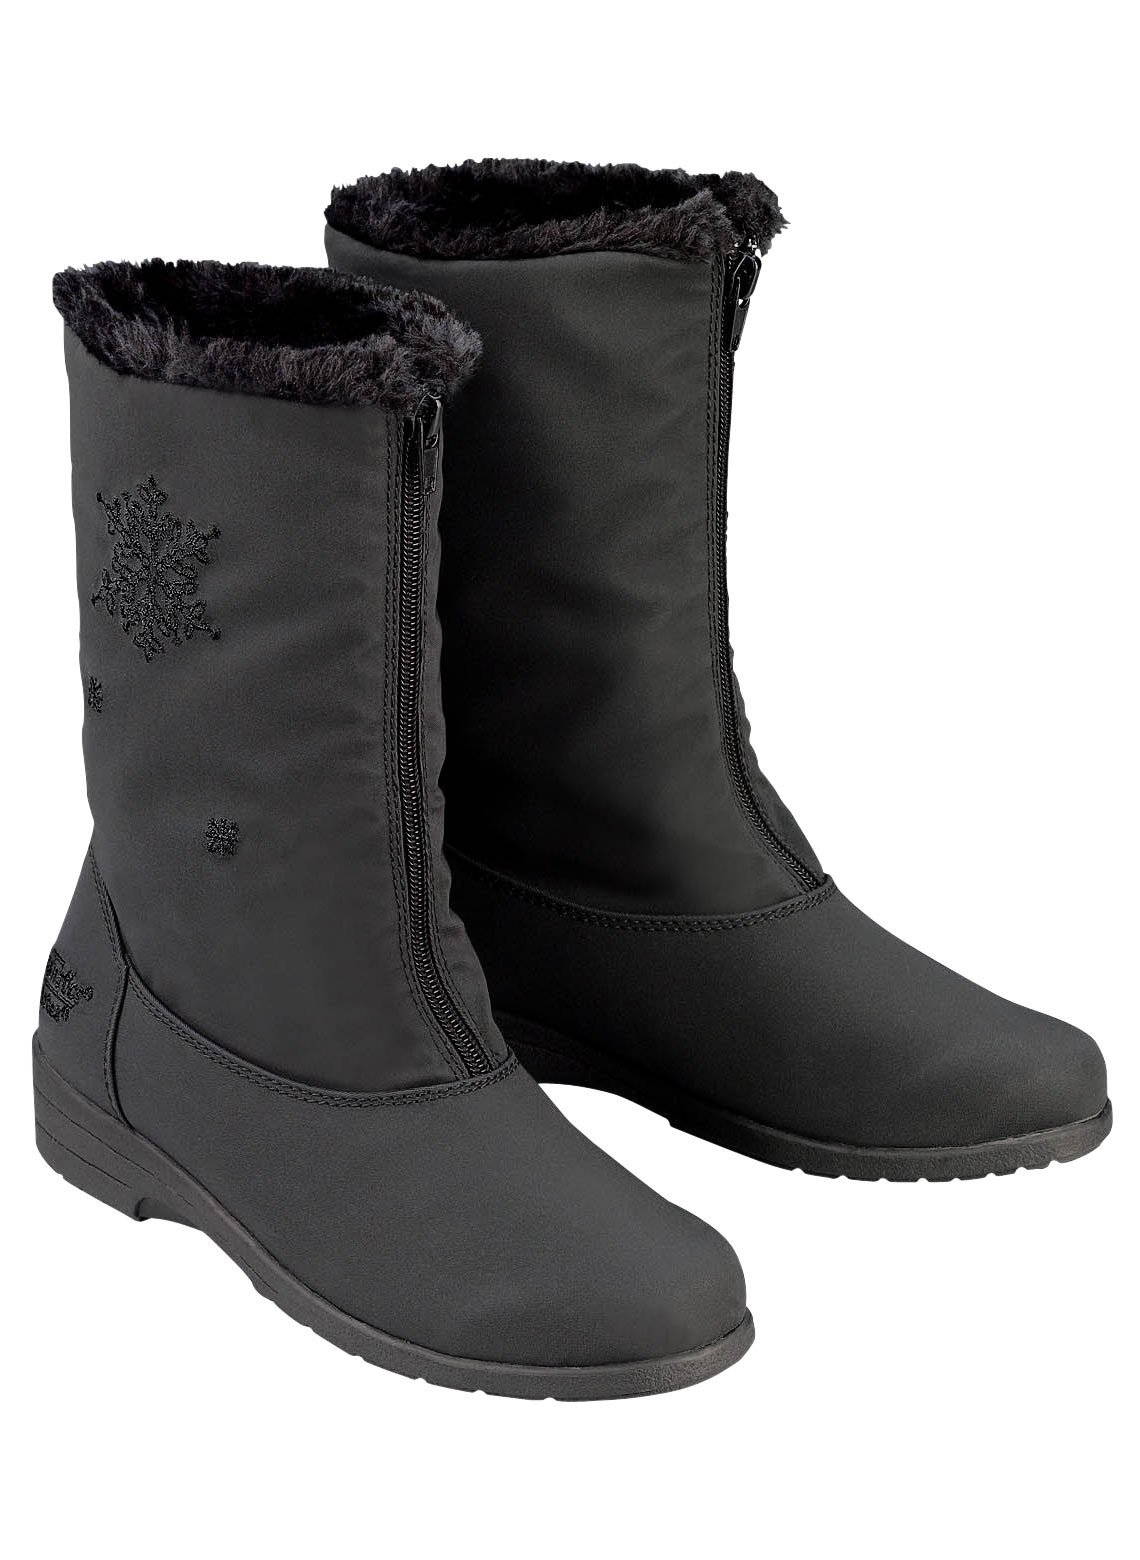 Chromatics by Totes Snowflake Boots, Black, Size 8 (Wide)